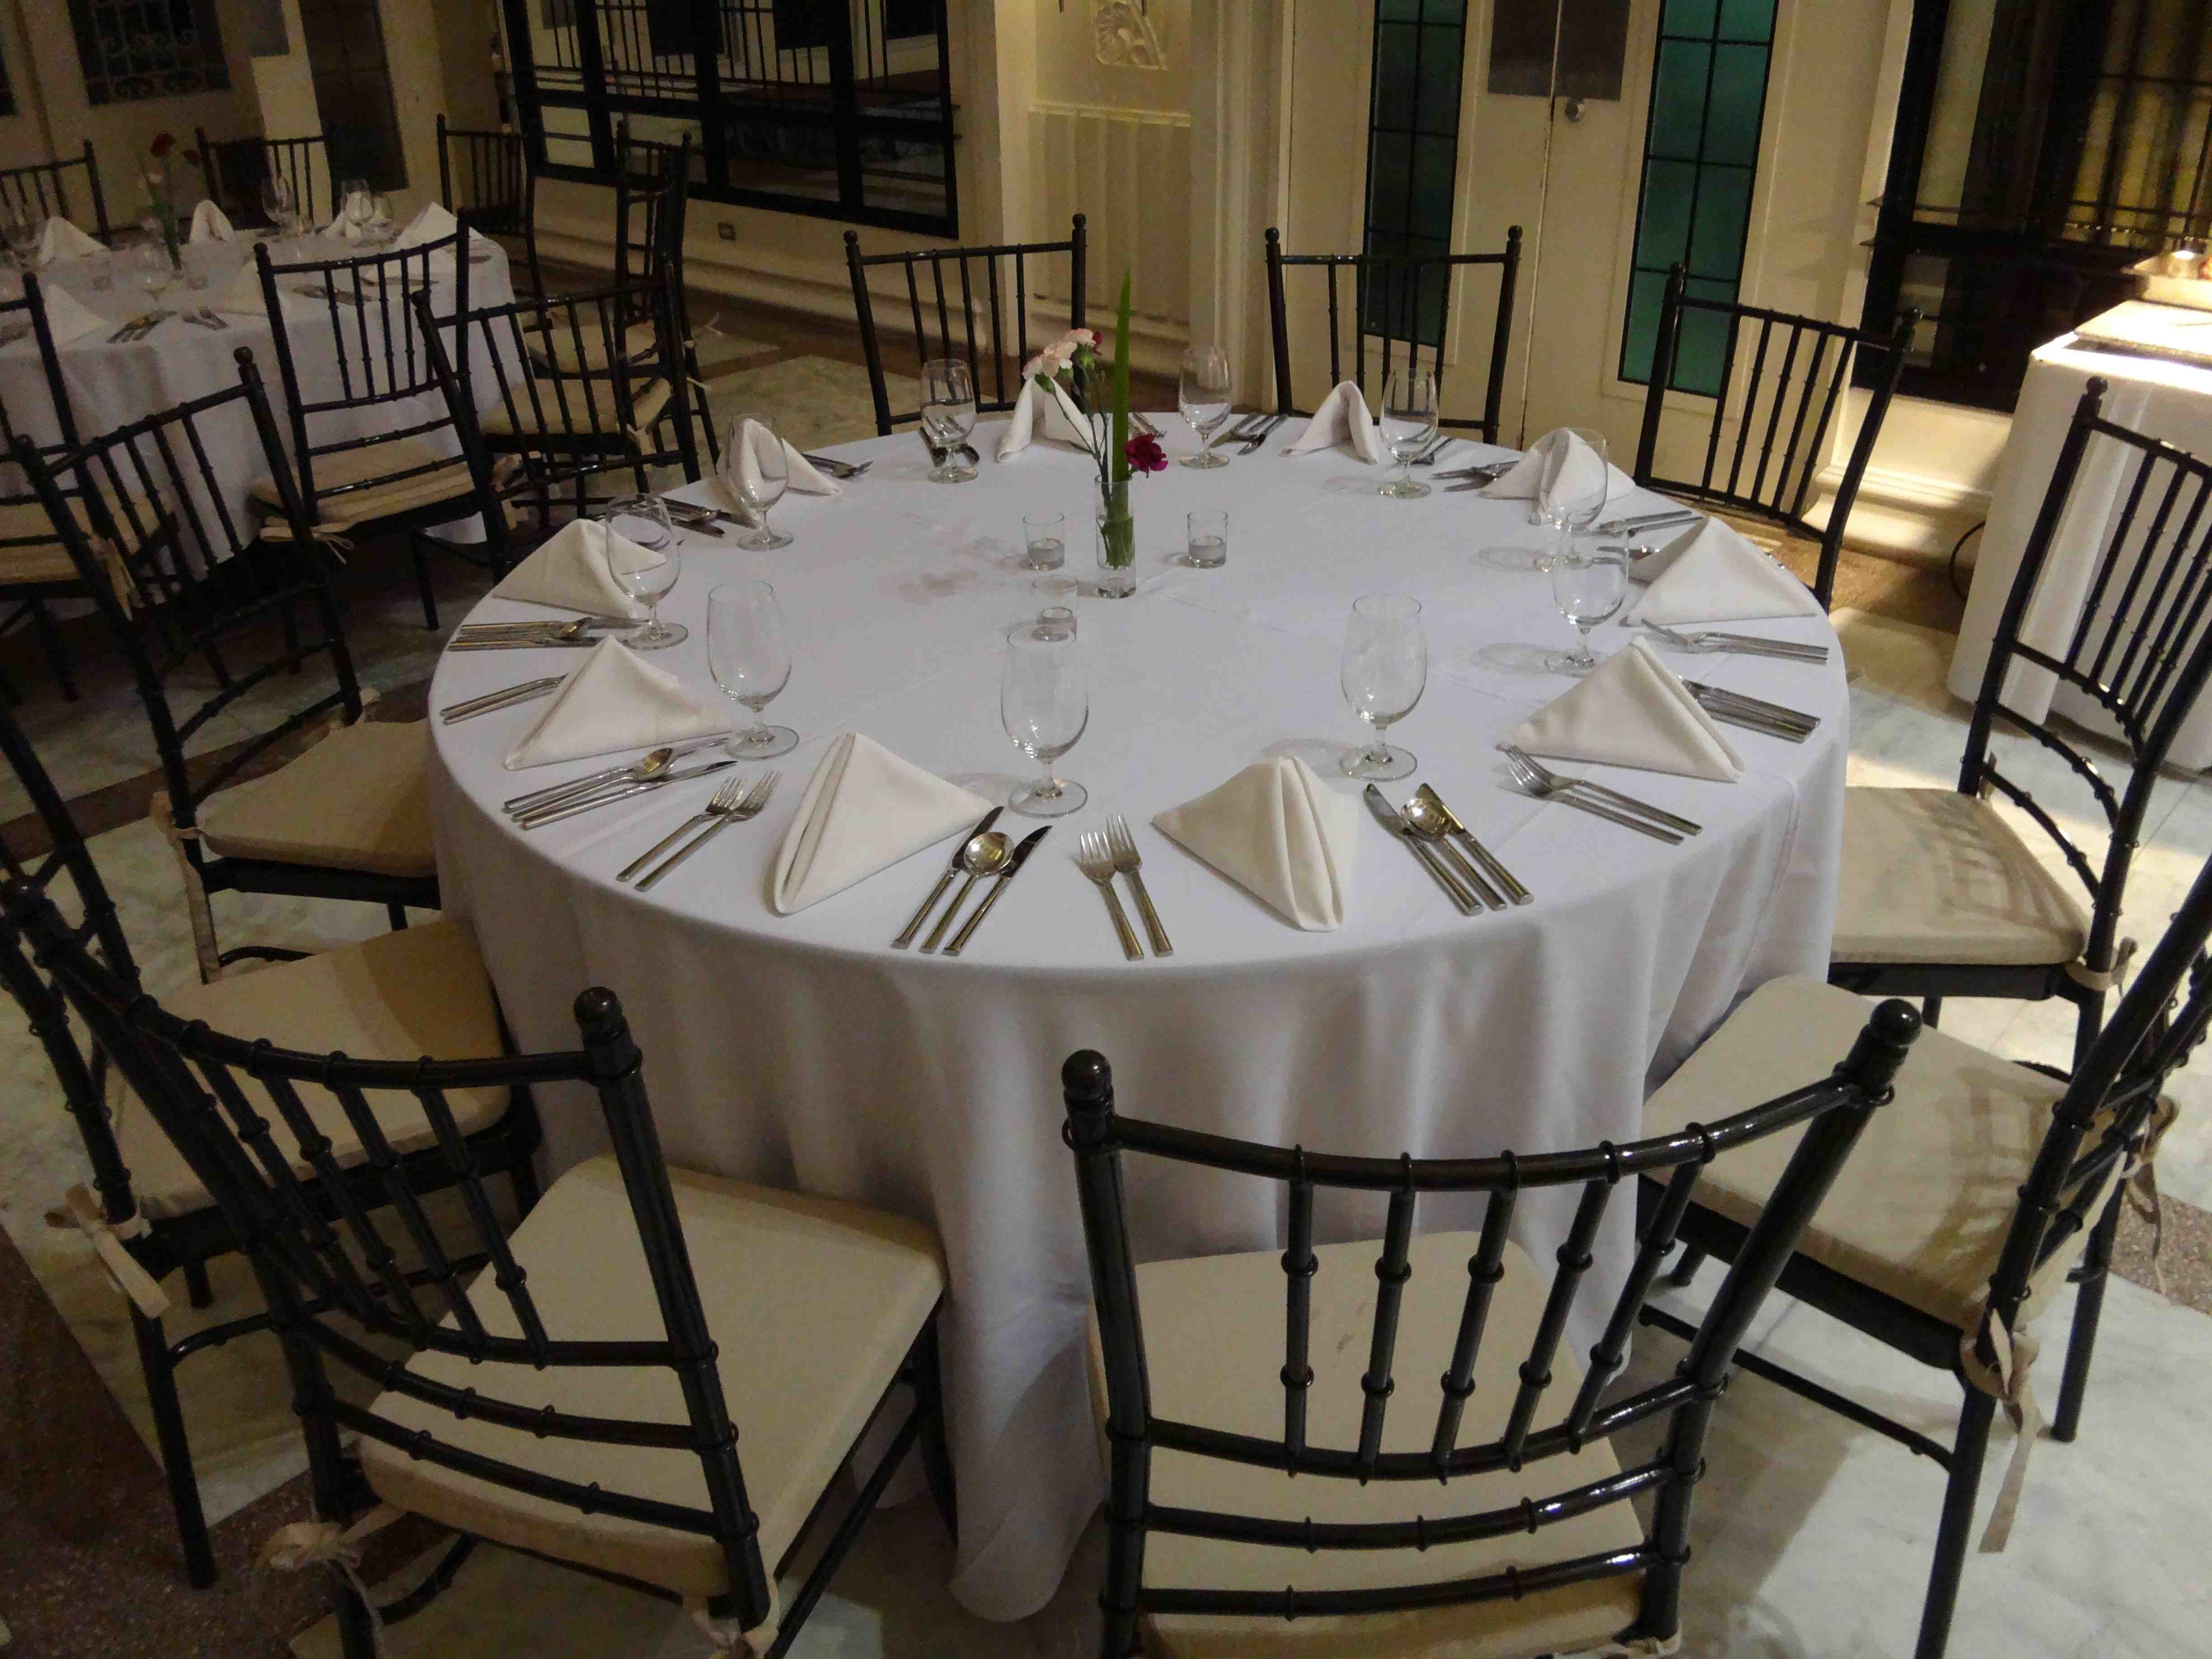 Chair Cover Rentals Dc Chairs For Baby Room Enderun Basic Setup Rounded Tables Black Tiffany